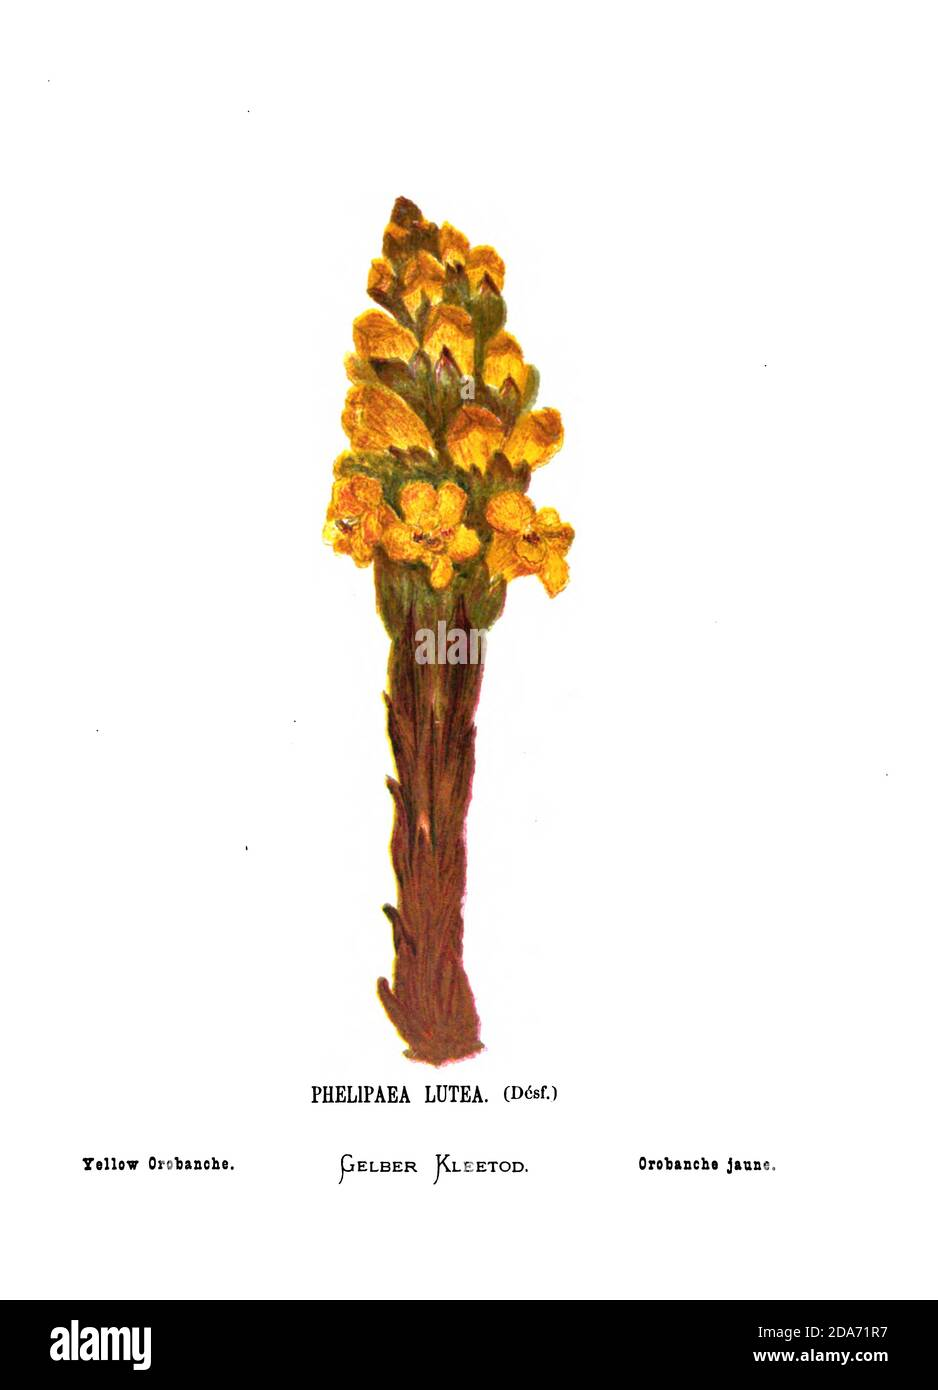 Yellow or desert broomrape (Cistanche tubulosa [Here as Phelipaea Lutea]) From the book Wild flowers of the Holy Land: Fifty-Four Plates Printed In Colours, Drawn And Painted After Nature. by Mrs. Hannah Zeller, (Gobat); Tristram, H. B. (Henry Baker), and Edward Atkinson, Published in London by James Nisbet & Co 1876 on white background Stock Photo